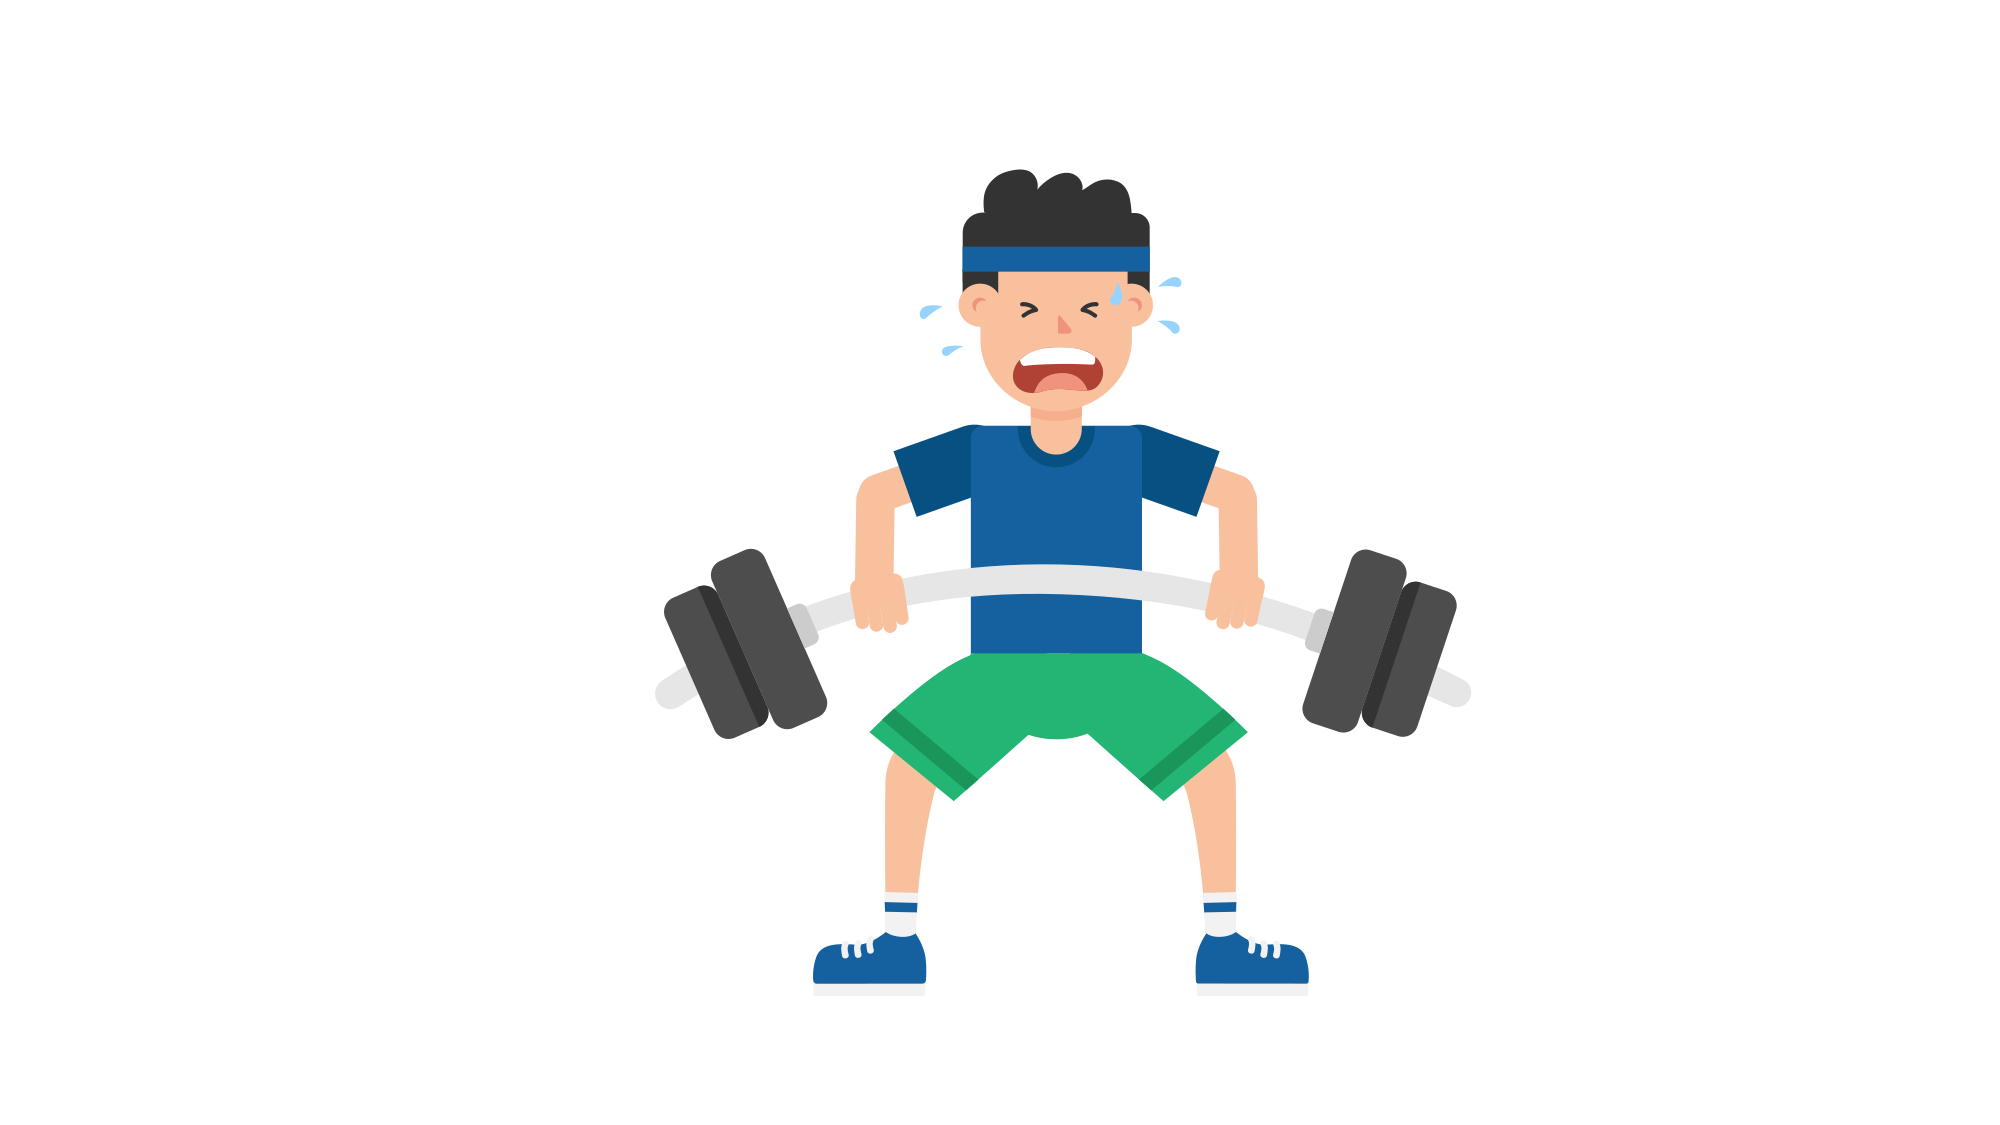 Dumbbells clipart weight bench. File man lifting barbell